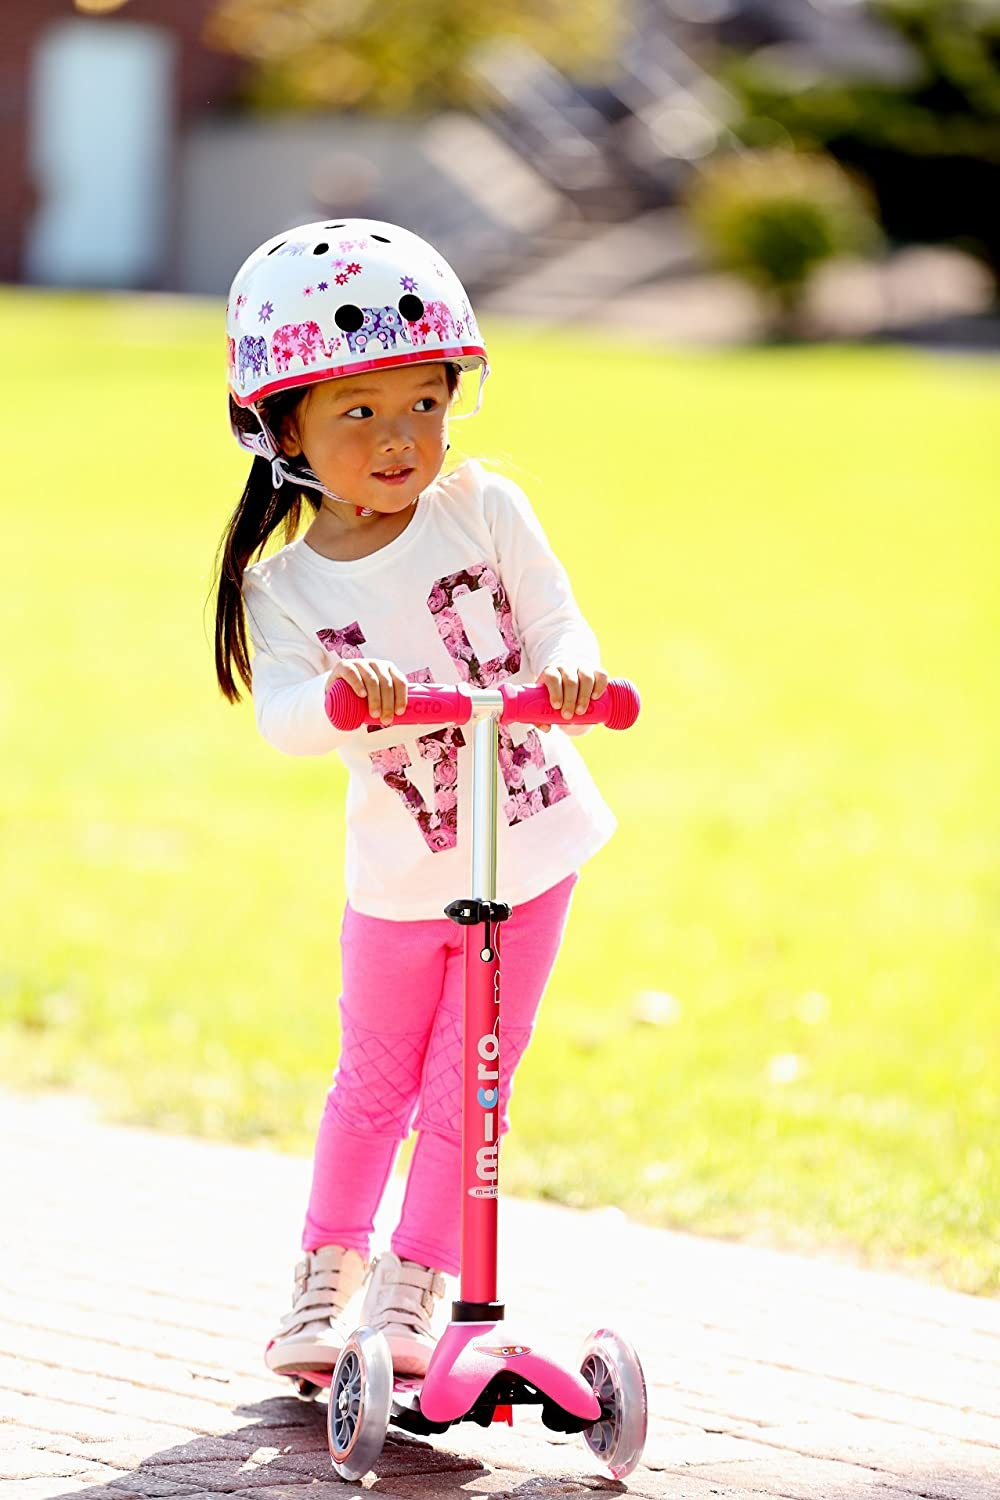 Micro Mini Deluxe Scooter Pink gifts 3 4 year old girls